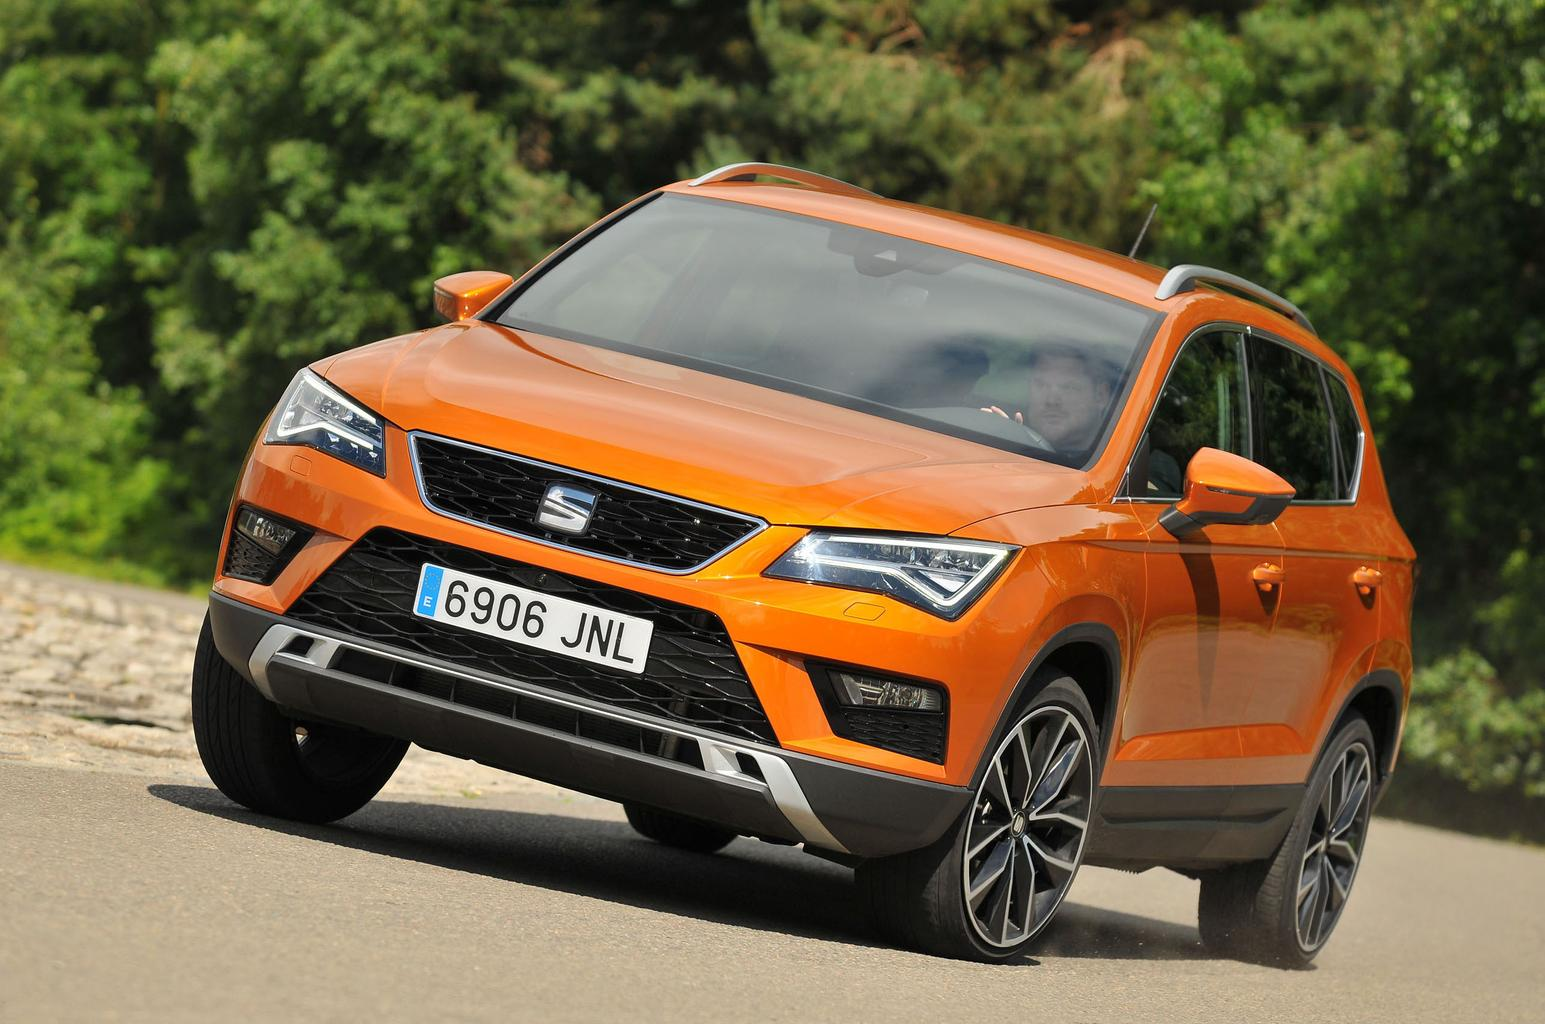 7 reasons to buy a Seat Ateca